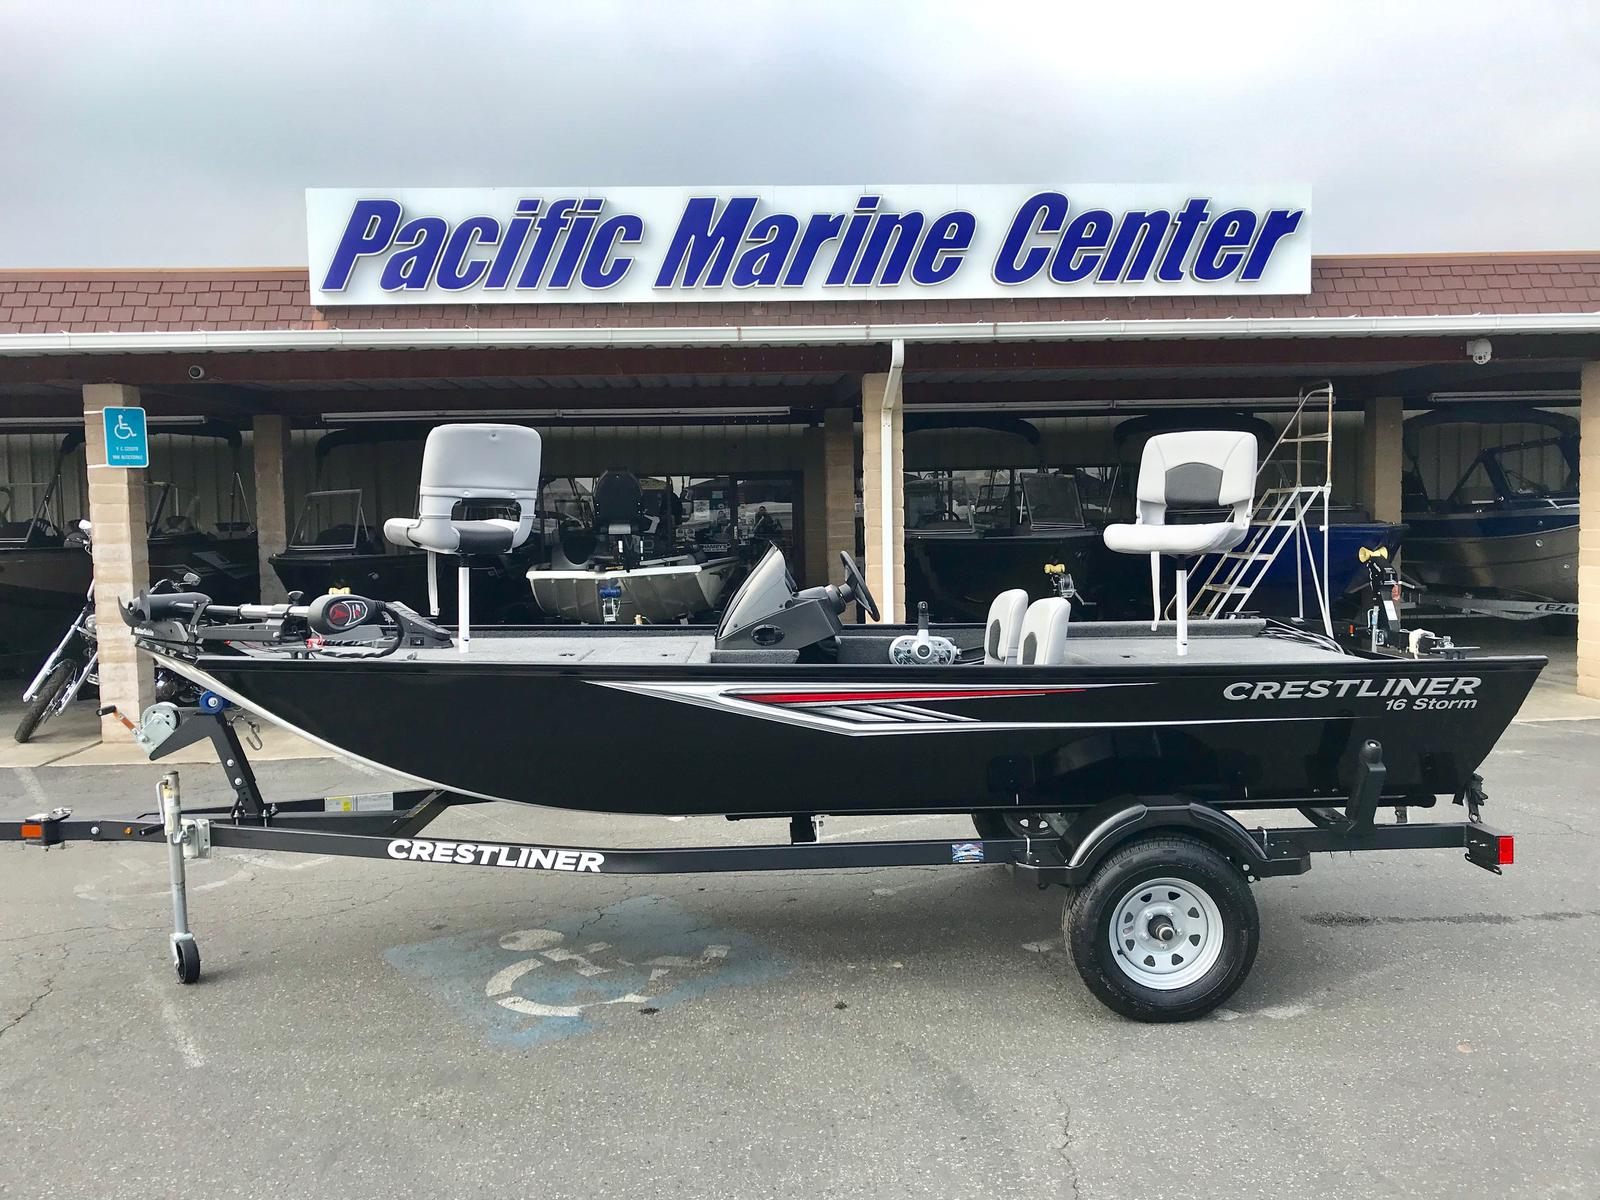 Crestliner 1600 Storm -with a Mercury 40 hp